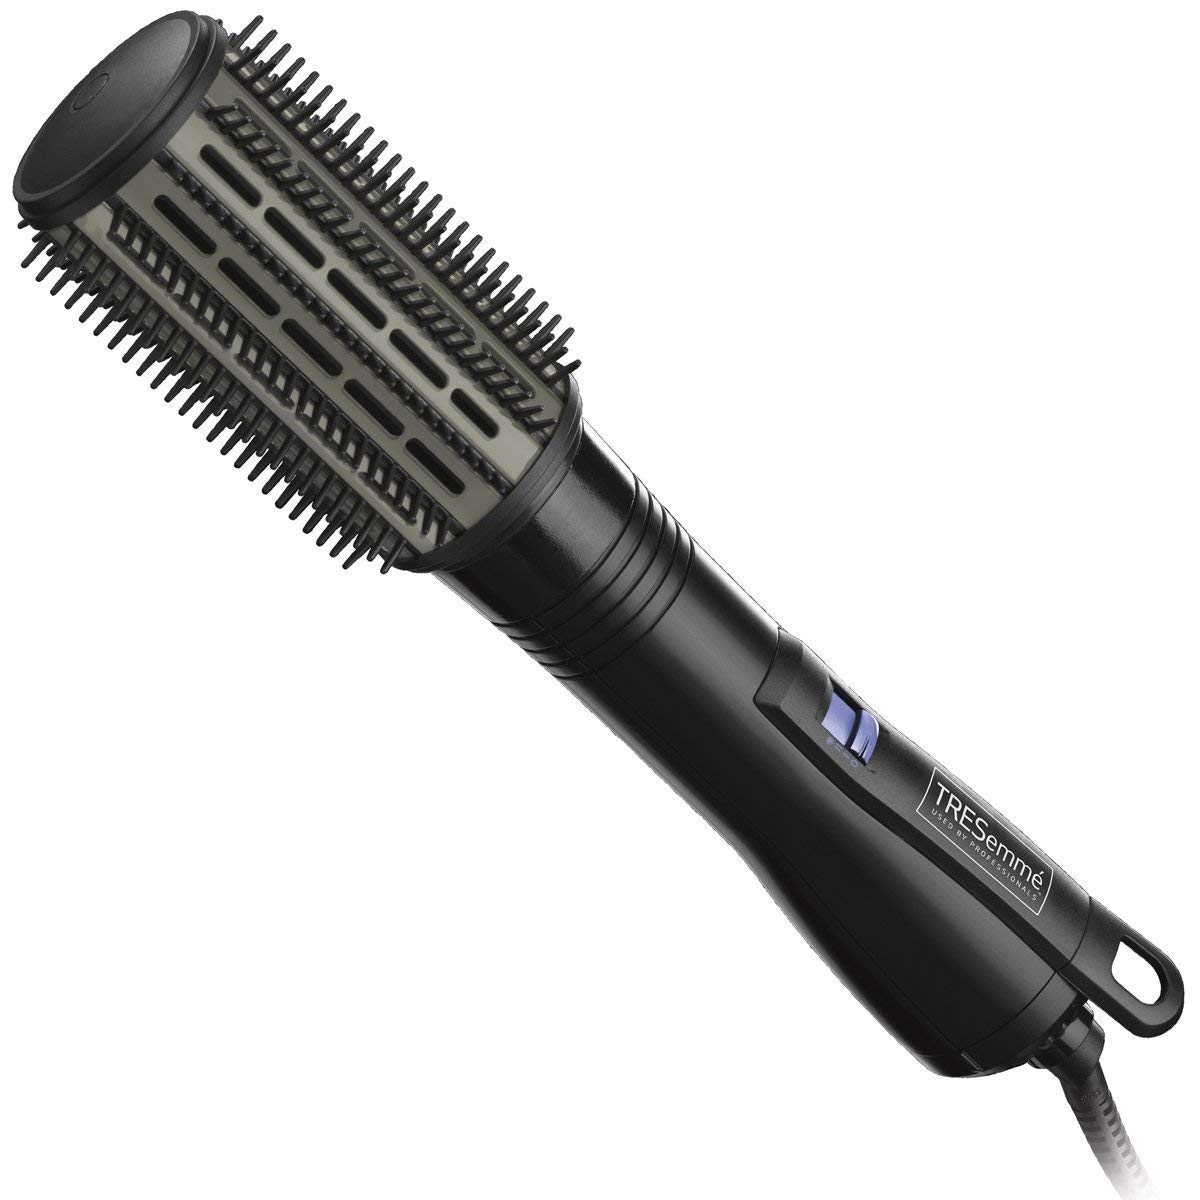 TRESemmé Platinum Strength Curling Iron Brush | Hot Air Brush for All Hair Types, Wet & Dry | Anti-Scald Curler Provides Excellent Volume | Hair Dryer Straightener Brush Reduces Frizz & Enhances Shine